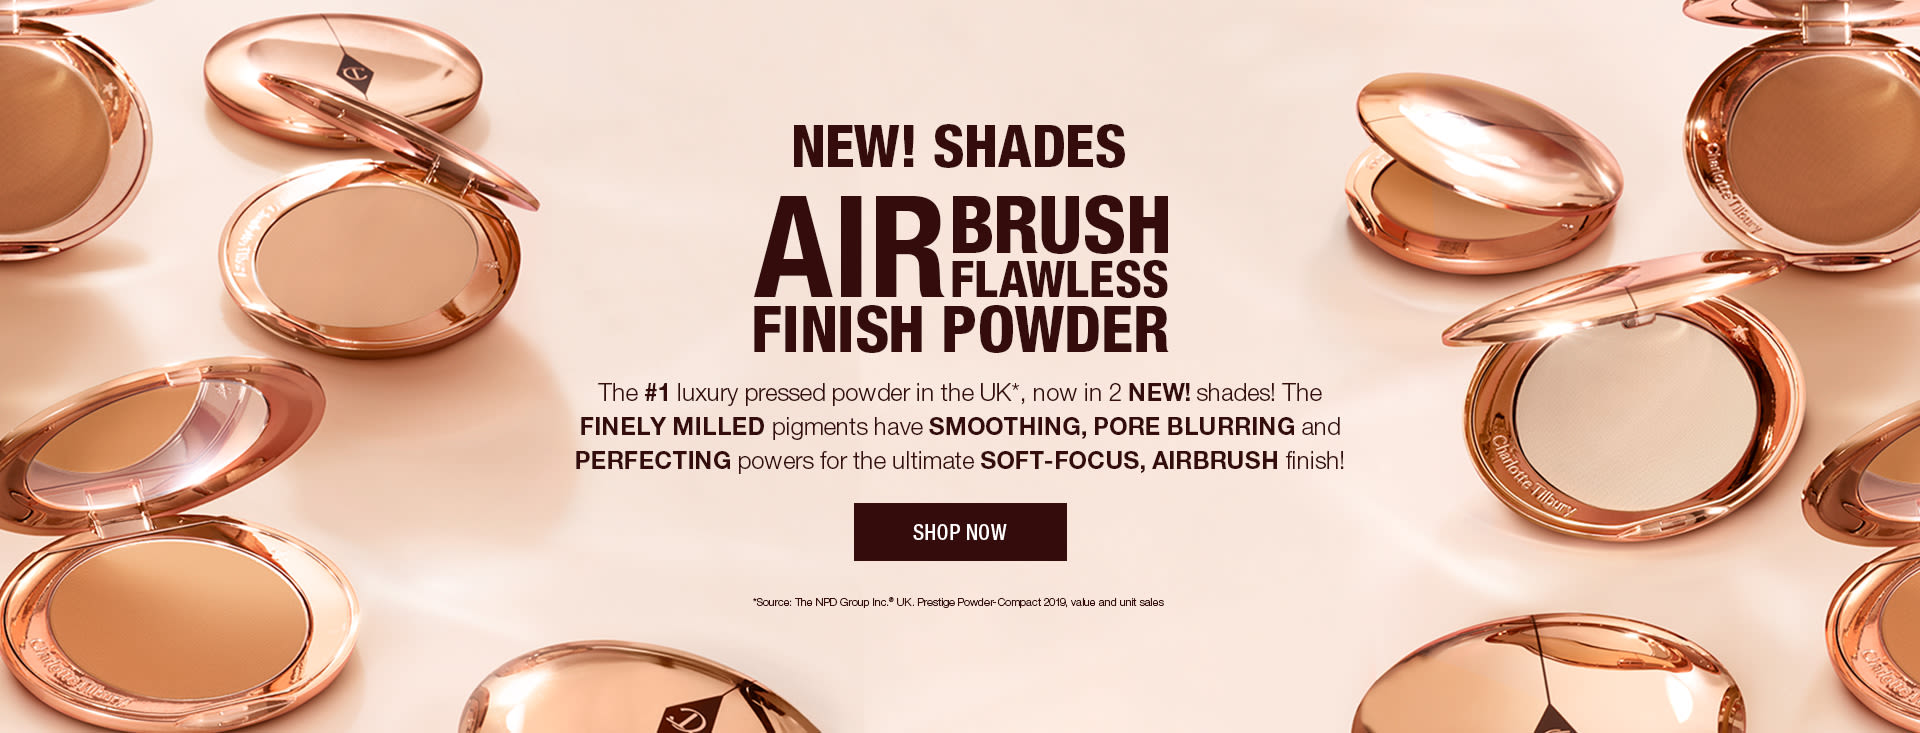 Airbrush Flawless Finish shade extension hero US